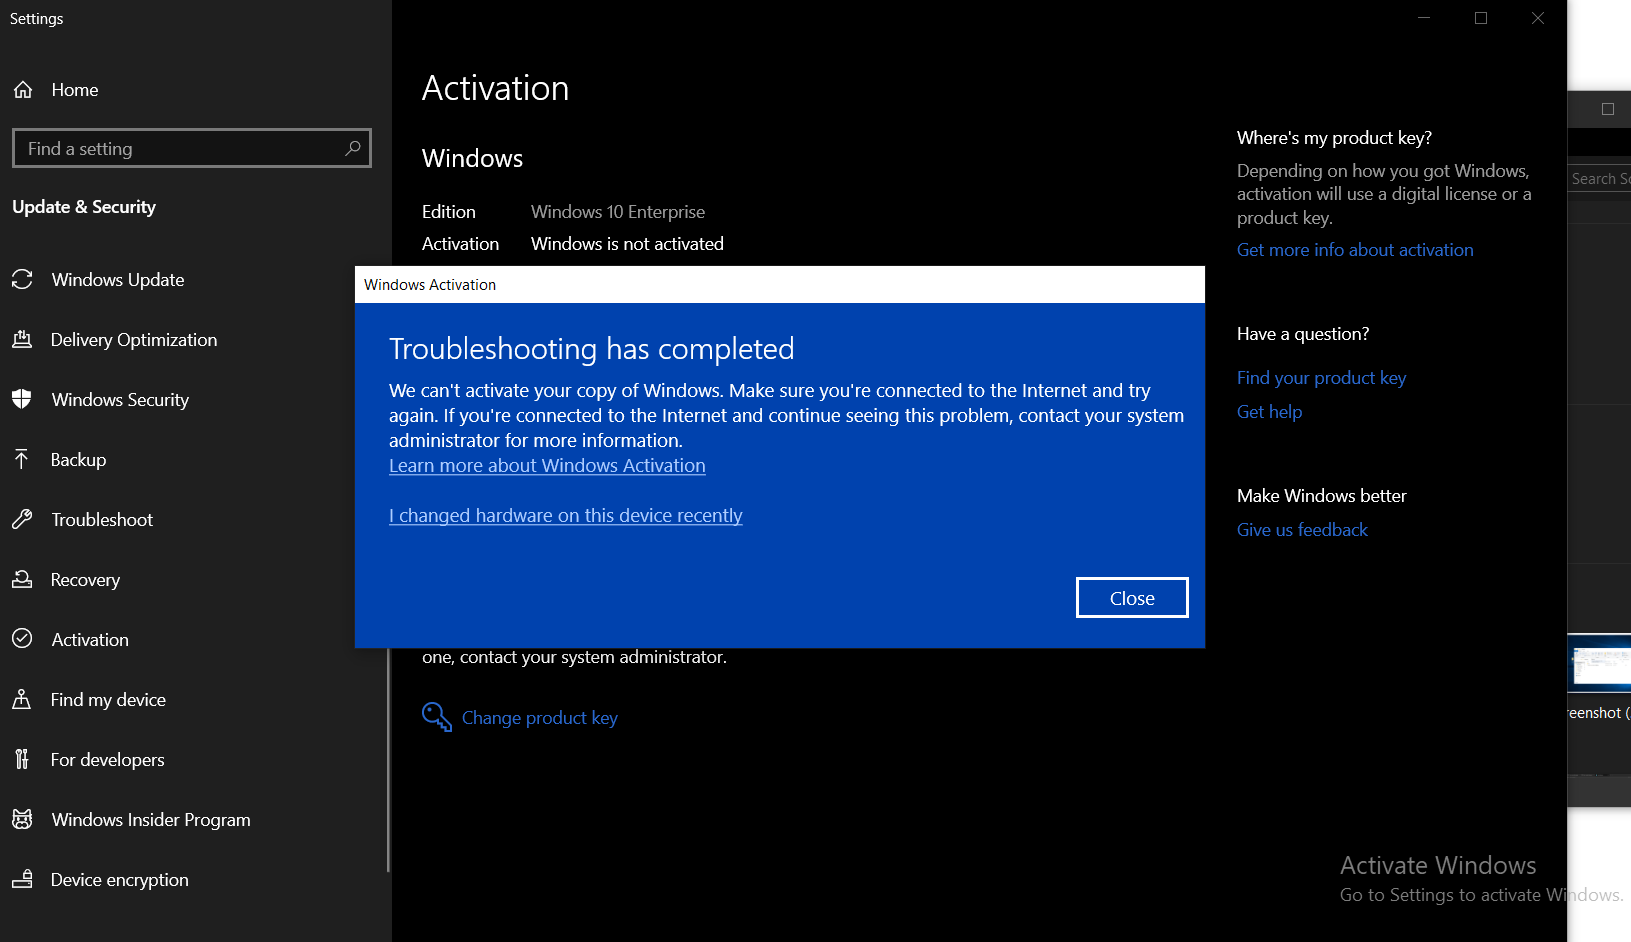 Windows 10 Pro Digital License Activation not working cca5f2b6-f338-4e49-aedb-d45a2587caf7?upload=true.png